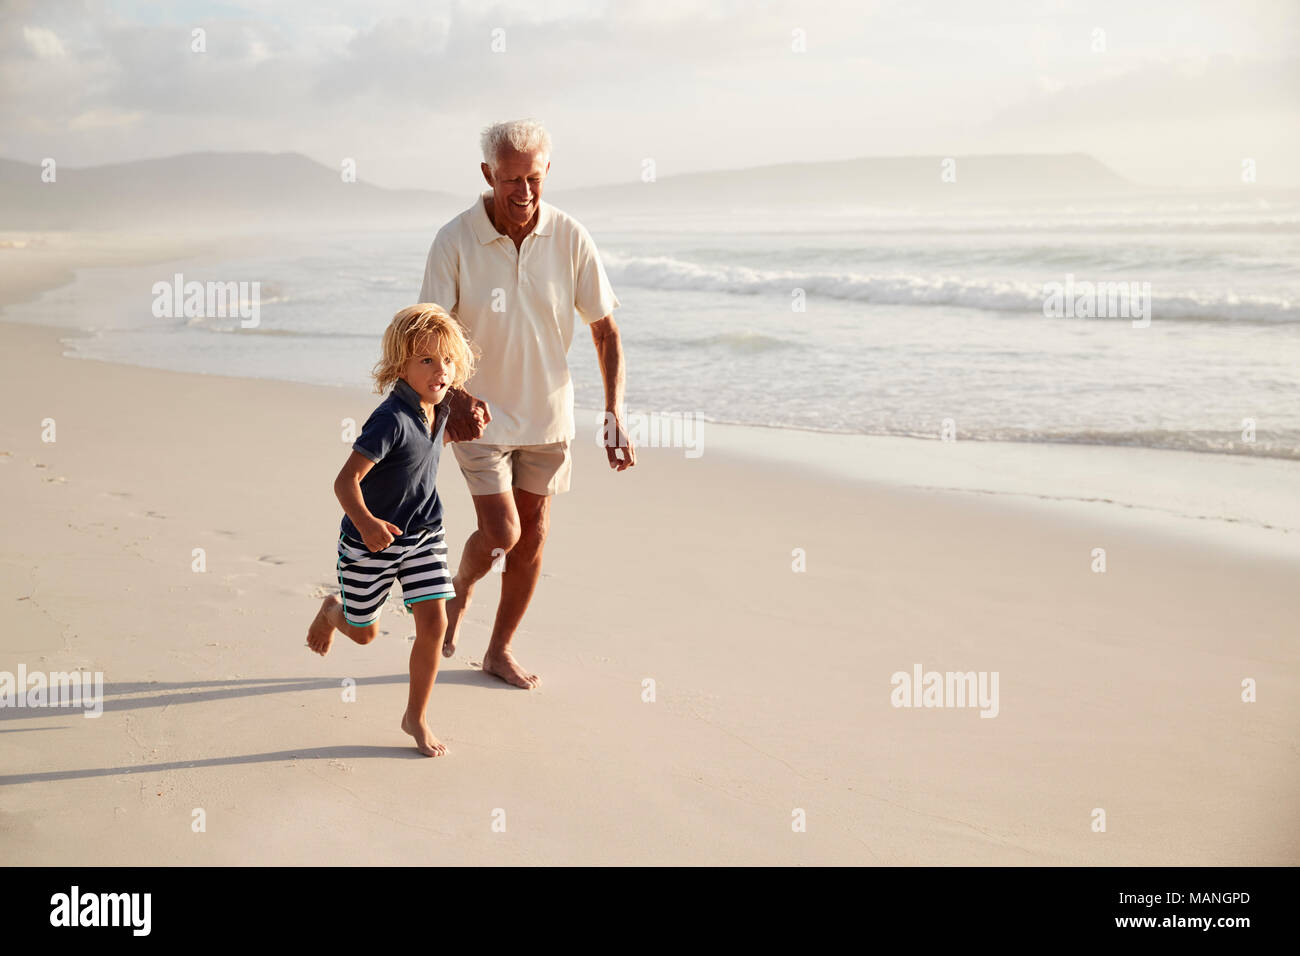 Grandfather Running Along Beach With Grandson On Summer Vacation - Stock Image